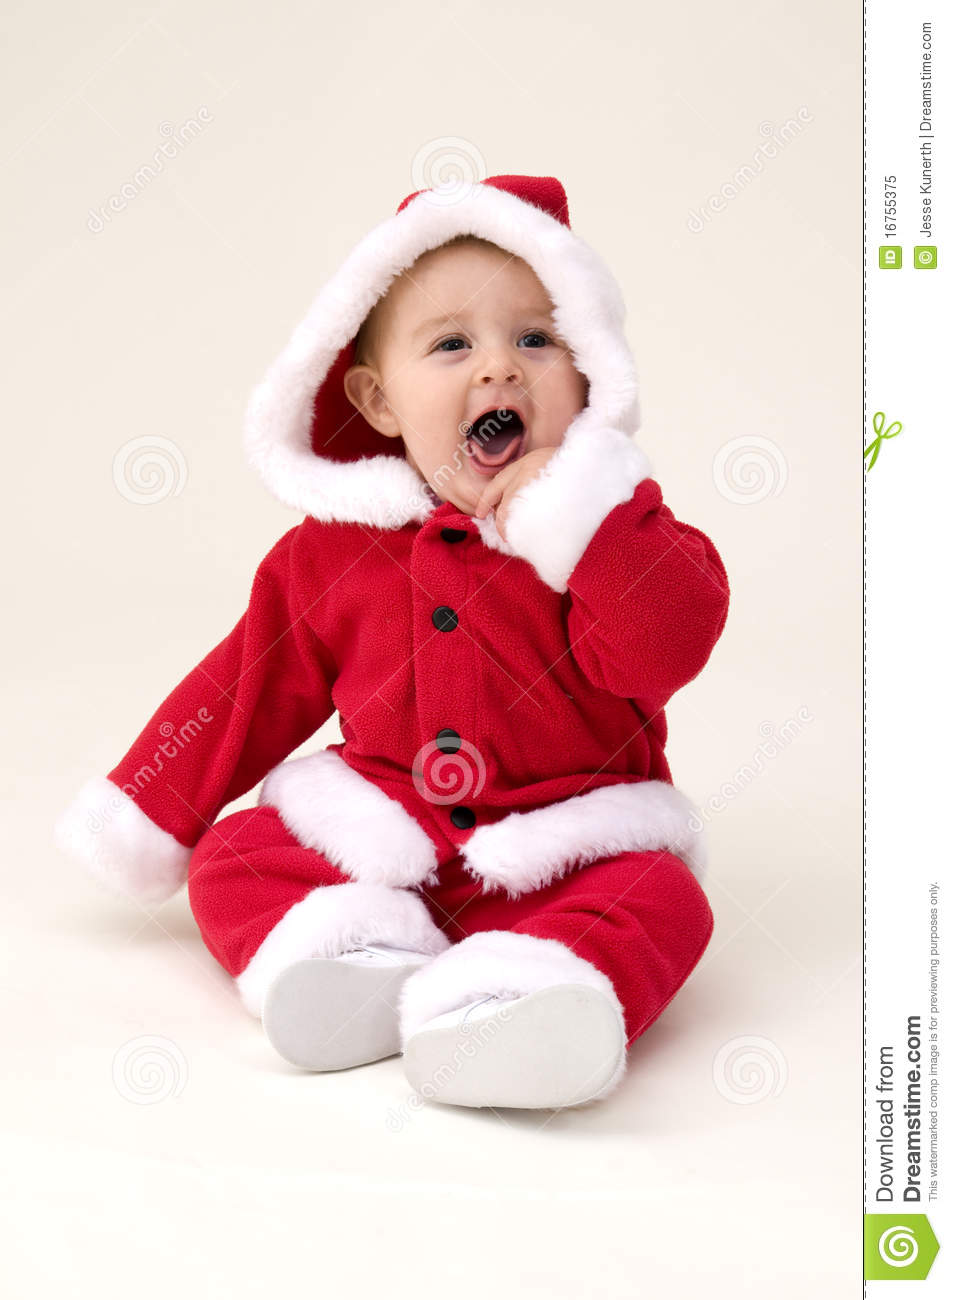 baby girl dressed up in santa costume stock image - image of